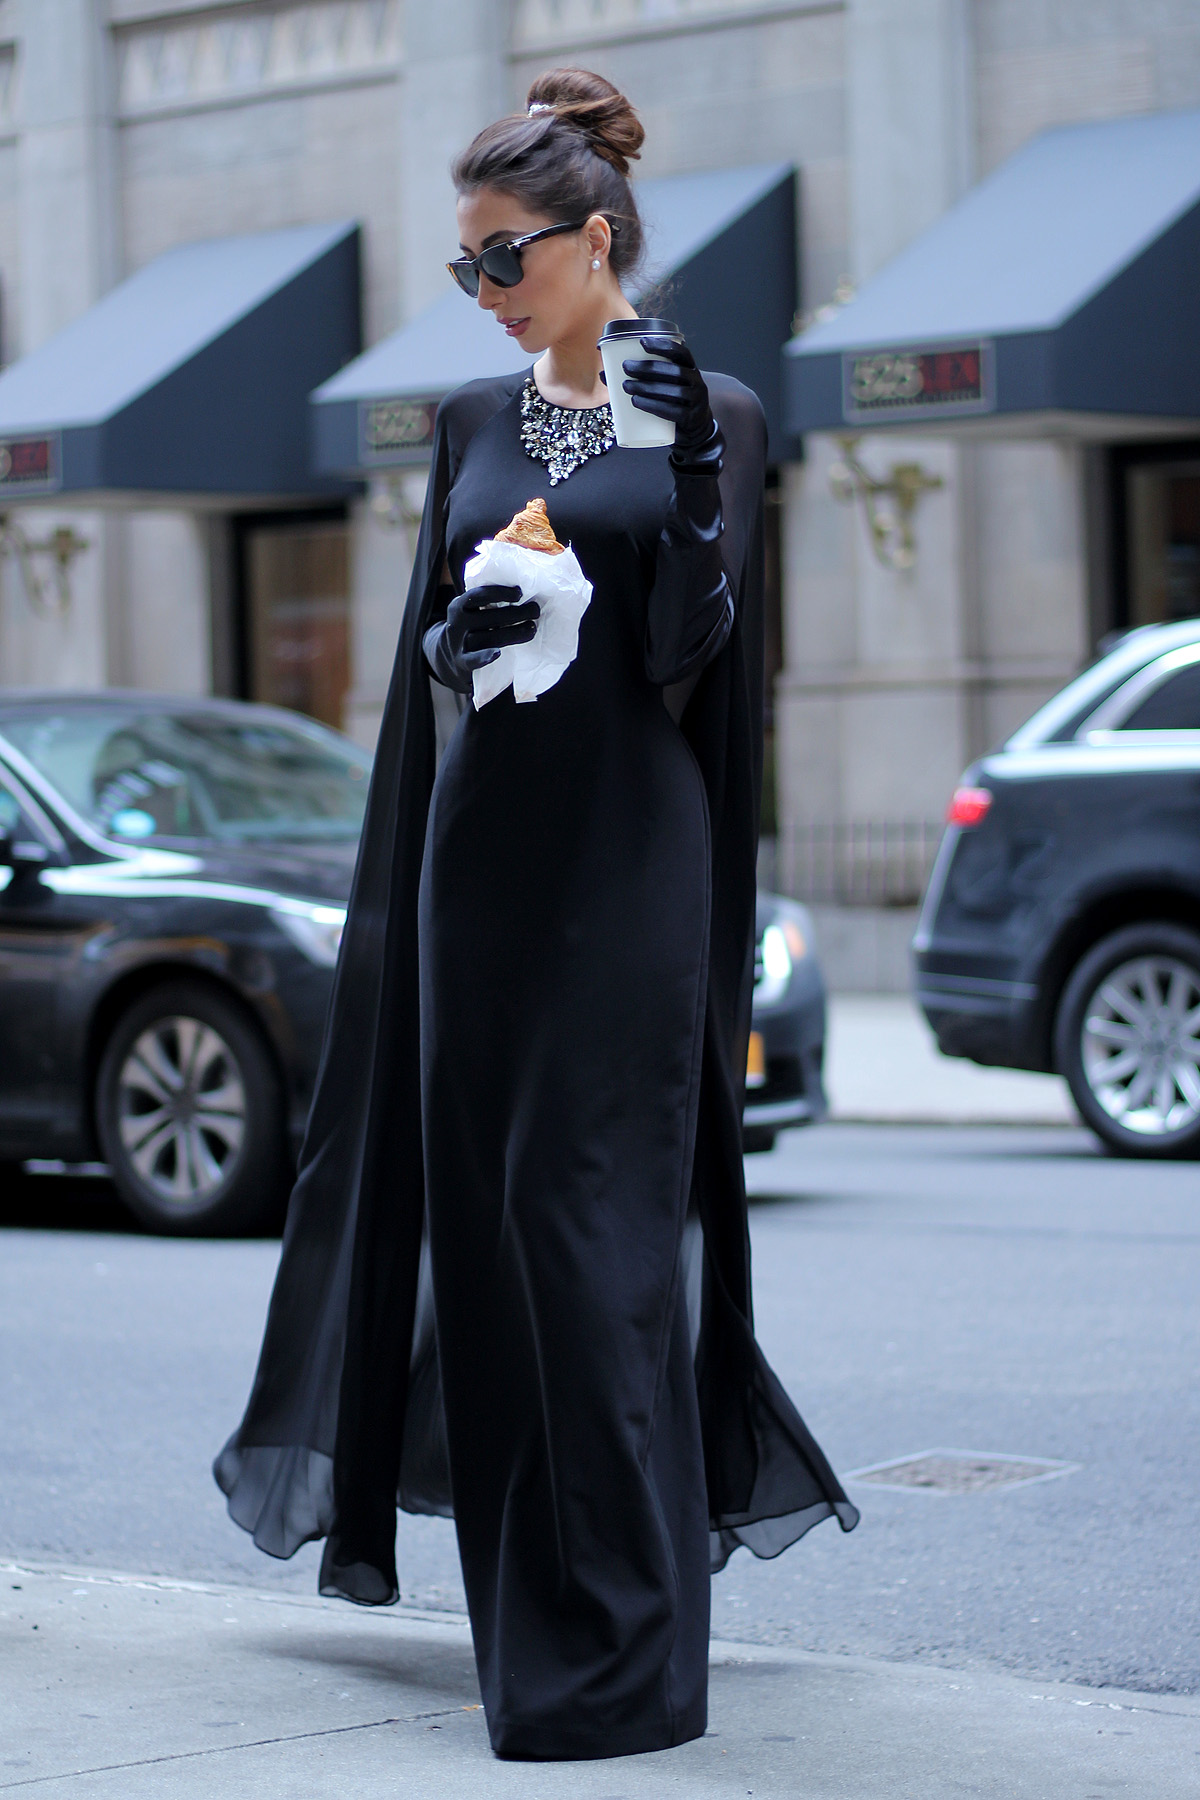 Black cape gown worn by Ulia Ali blogger for Breakfast at Tiffany look.